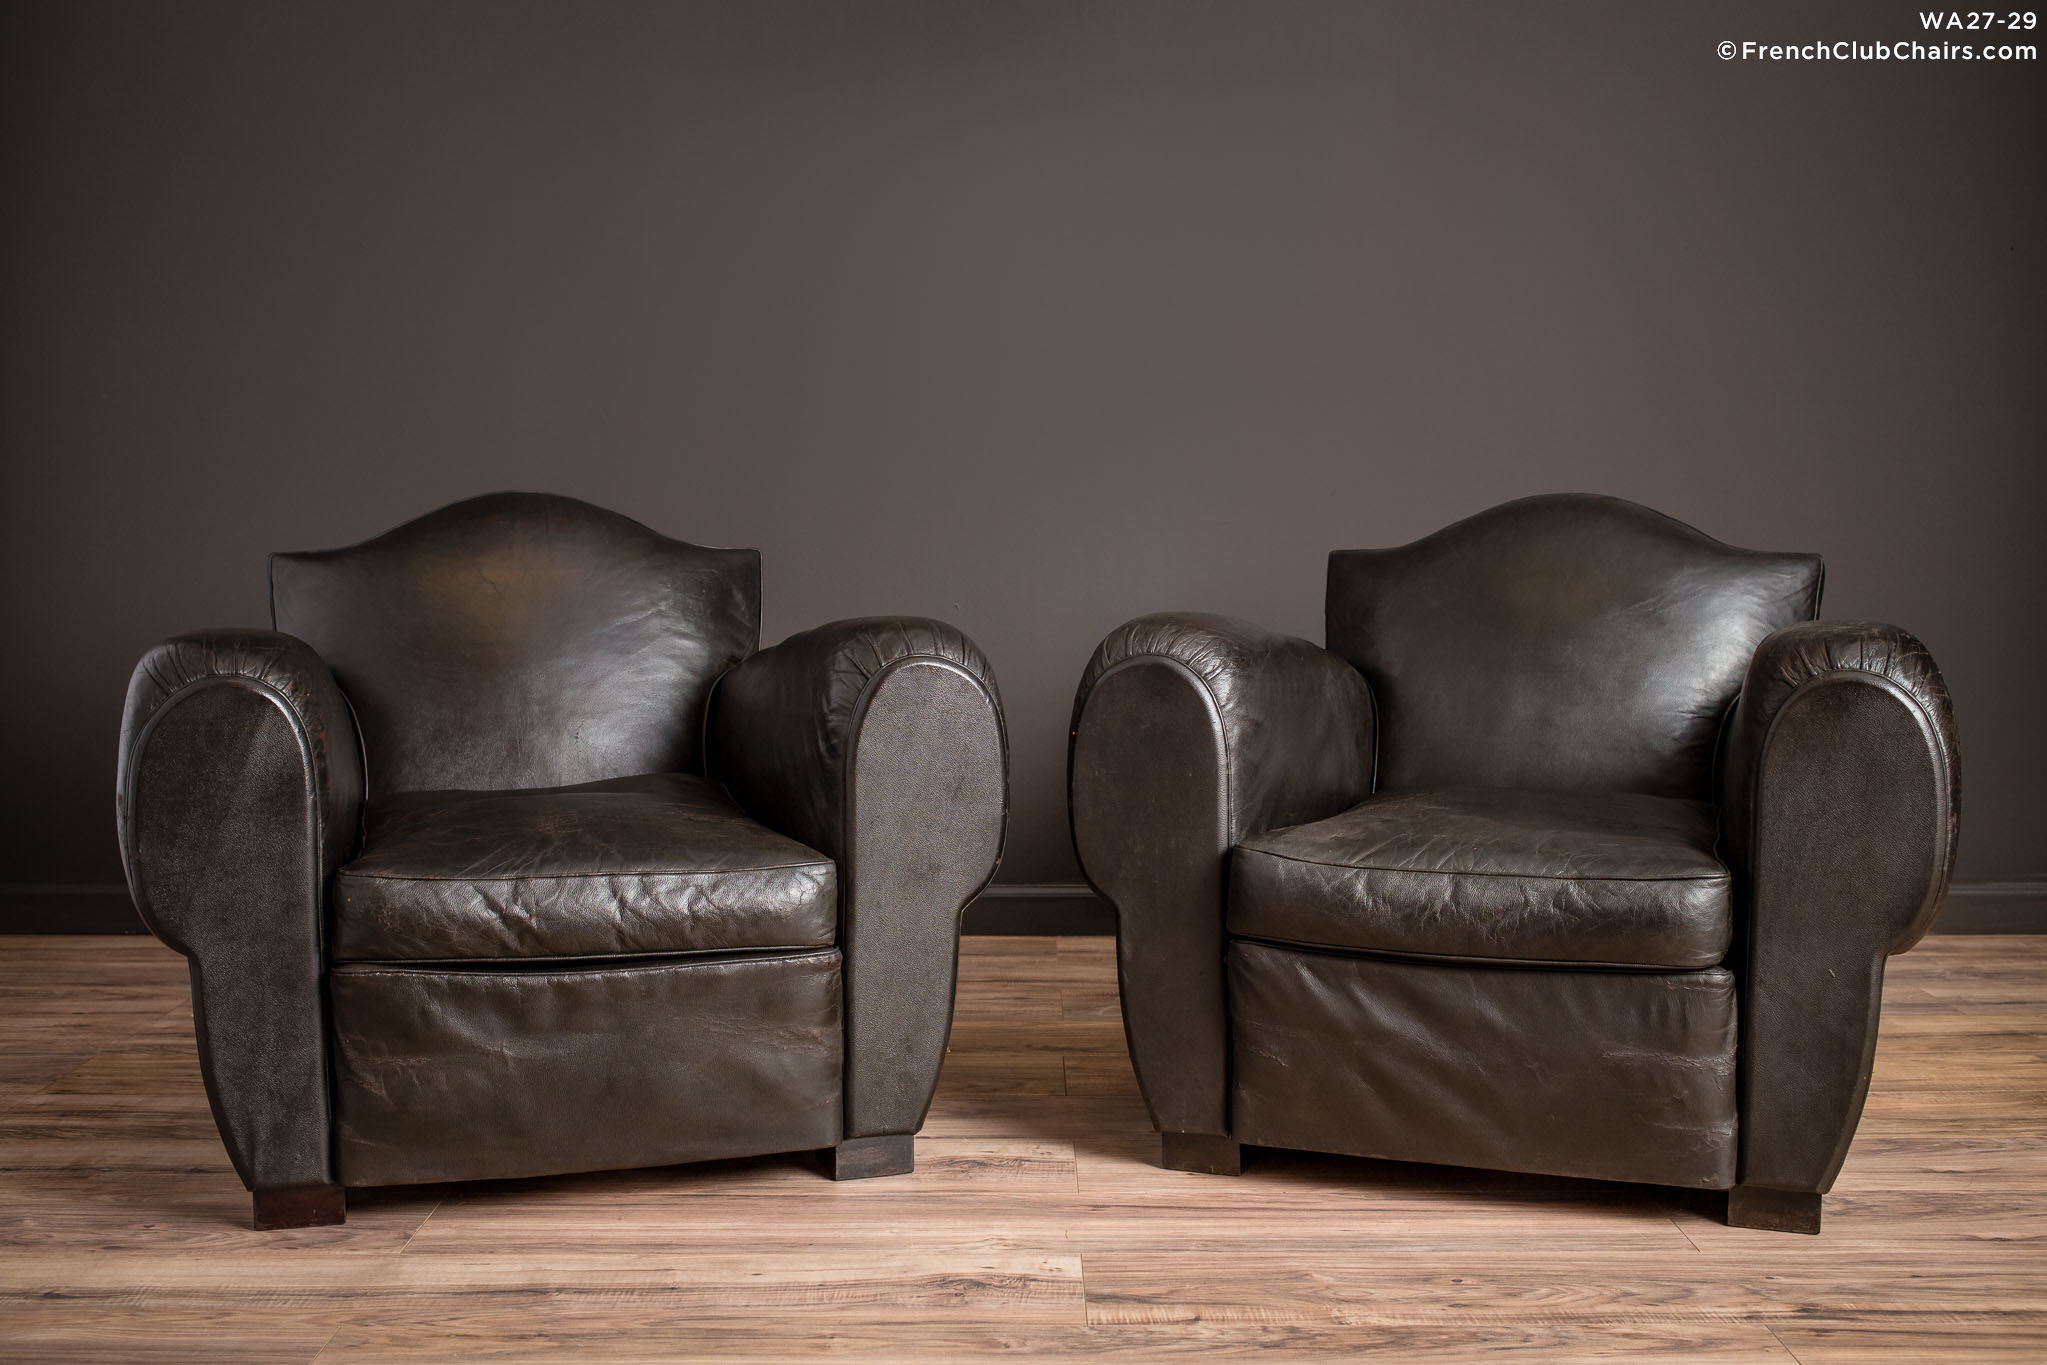 WA_27-29_Special_Gendarme_De_La_Nuit_Pair_R_1TQ-v01-williams-antiks-leather-french-club-chair-wa_fcccom